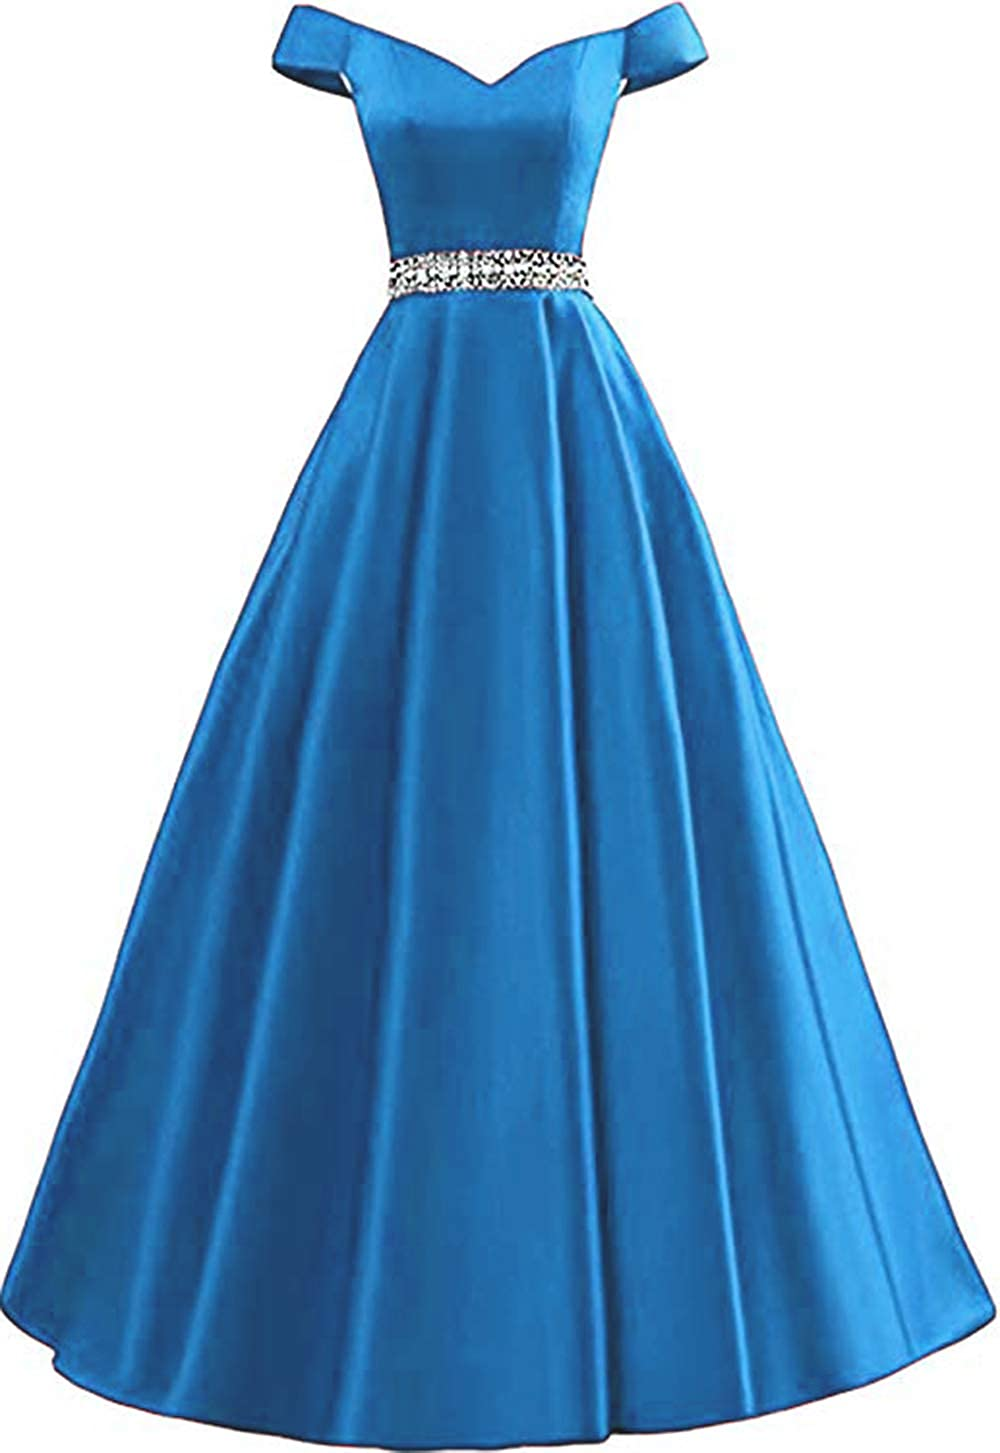 bluee Rmaytiked Women's Off Shoulder Prom Dresses Long 2019 Satin Beaded A Line Formal Evening Ball Gowns with Pockets